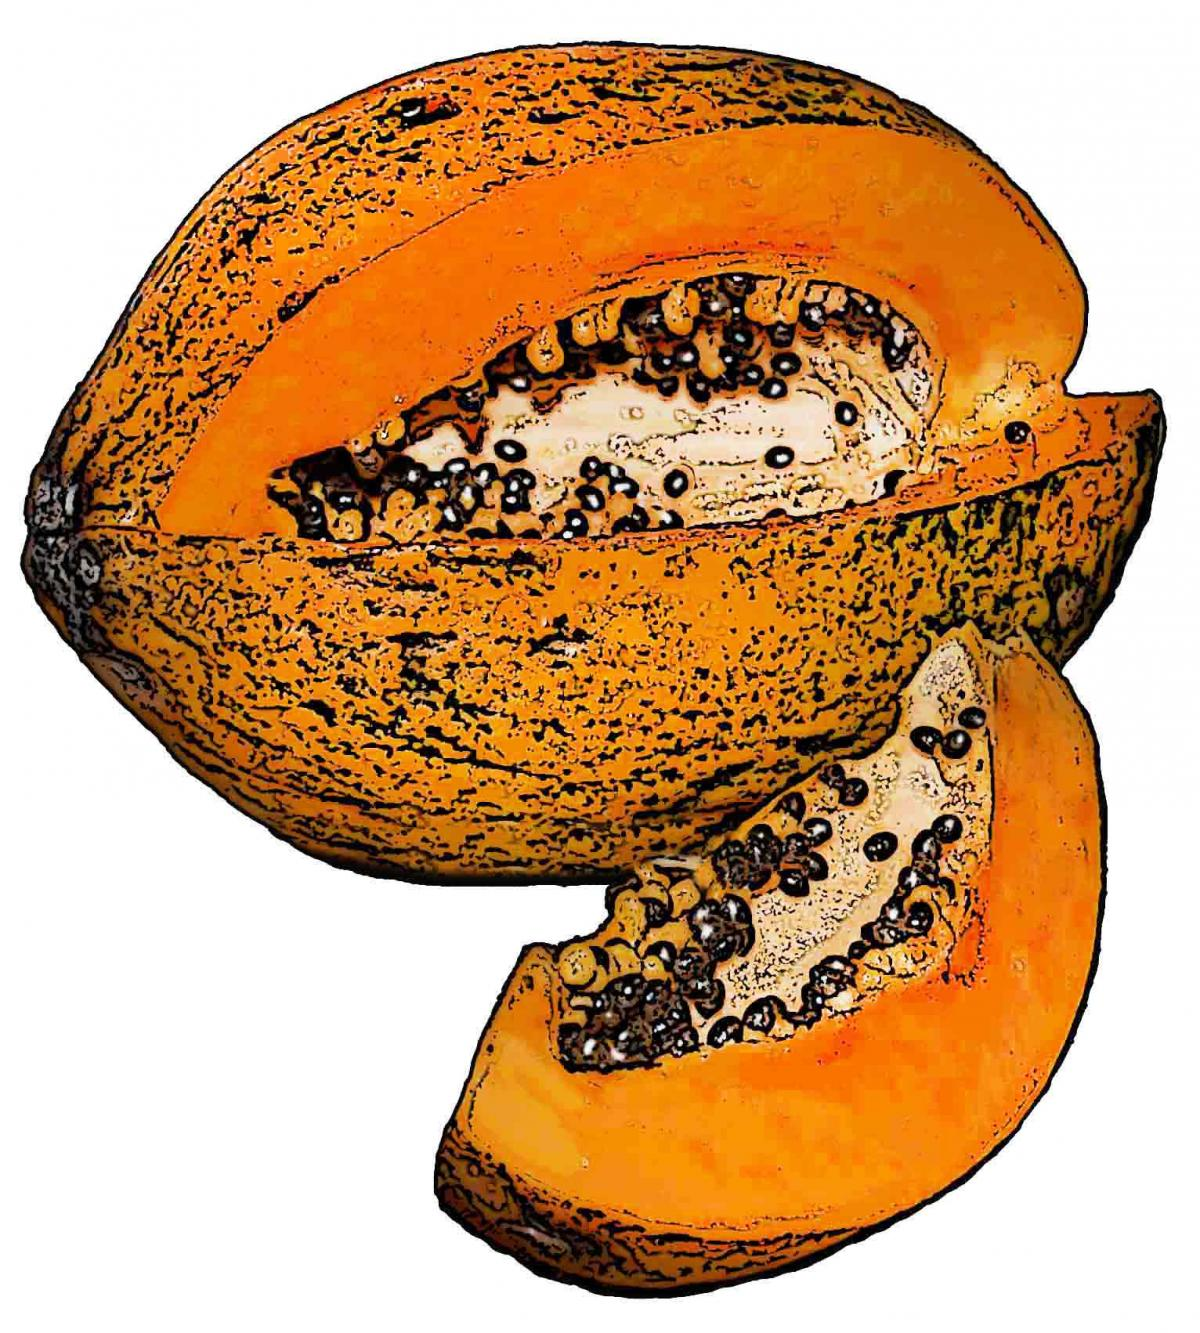 Food - Papaya - 00M - Non-country specific